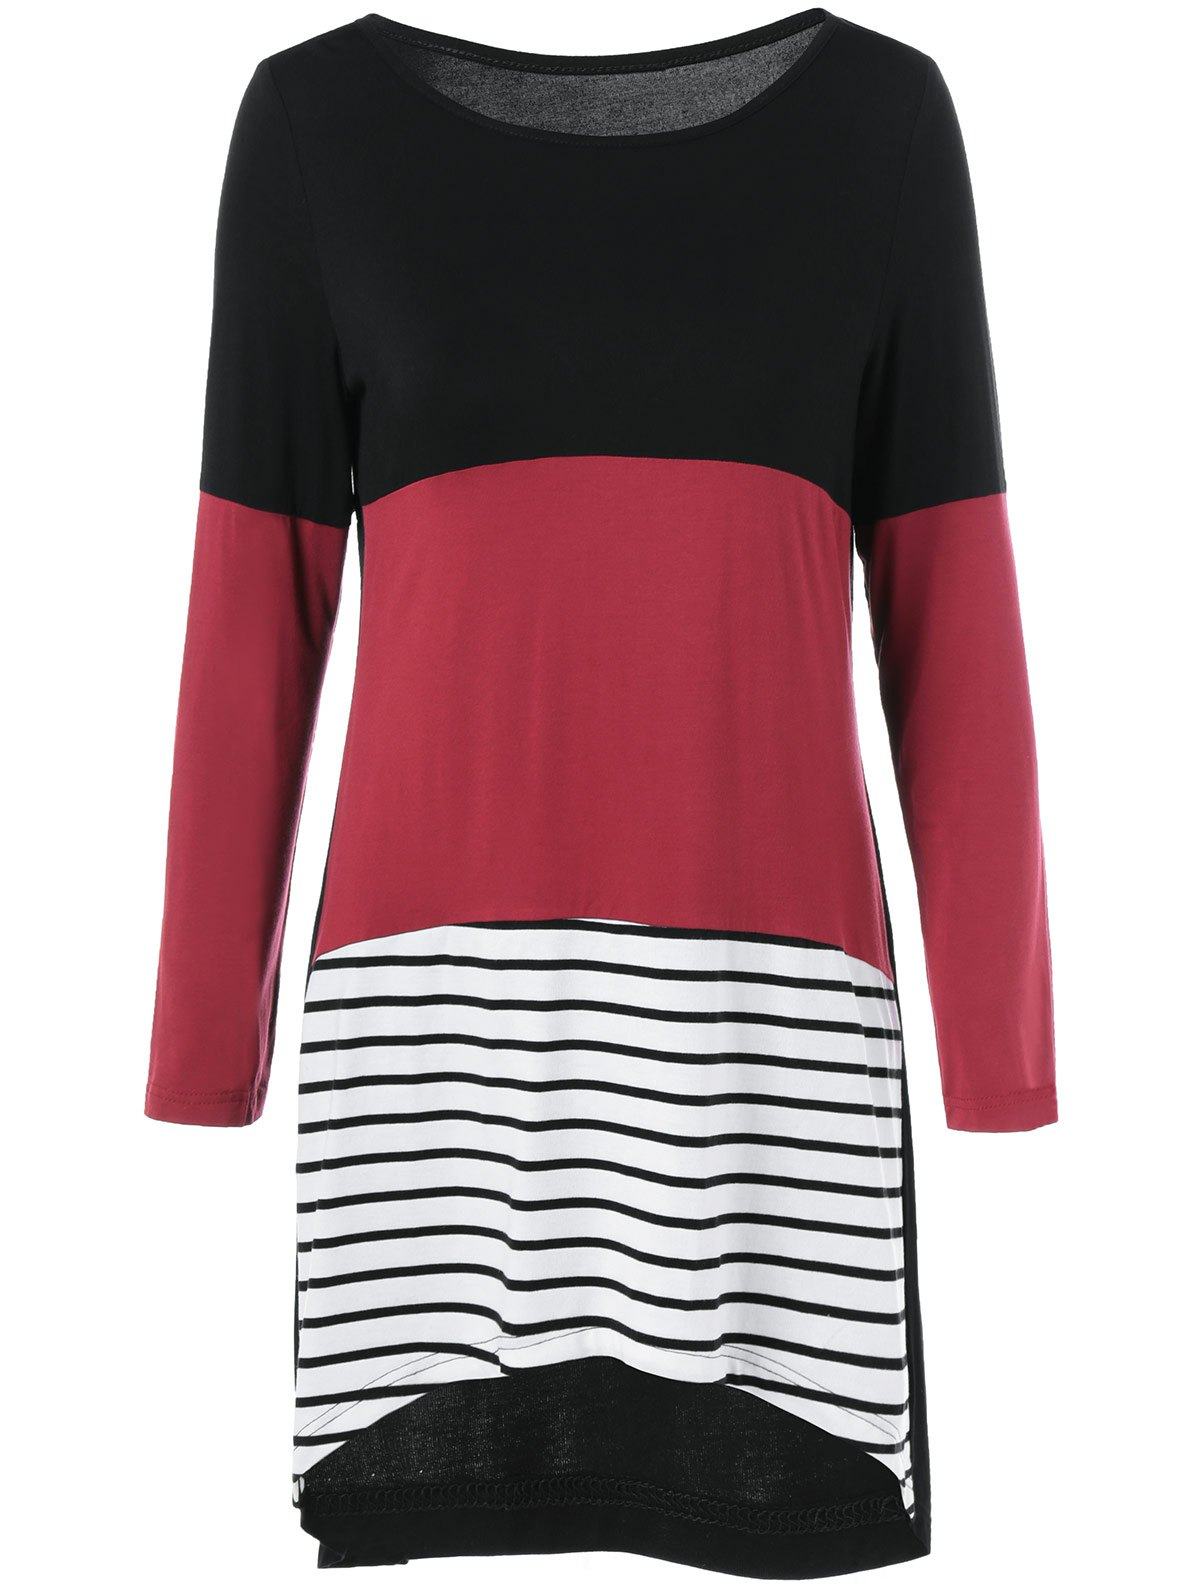 Buy Striped Spliced High Low Hem Dress BLACK/WHITE/RED